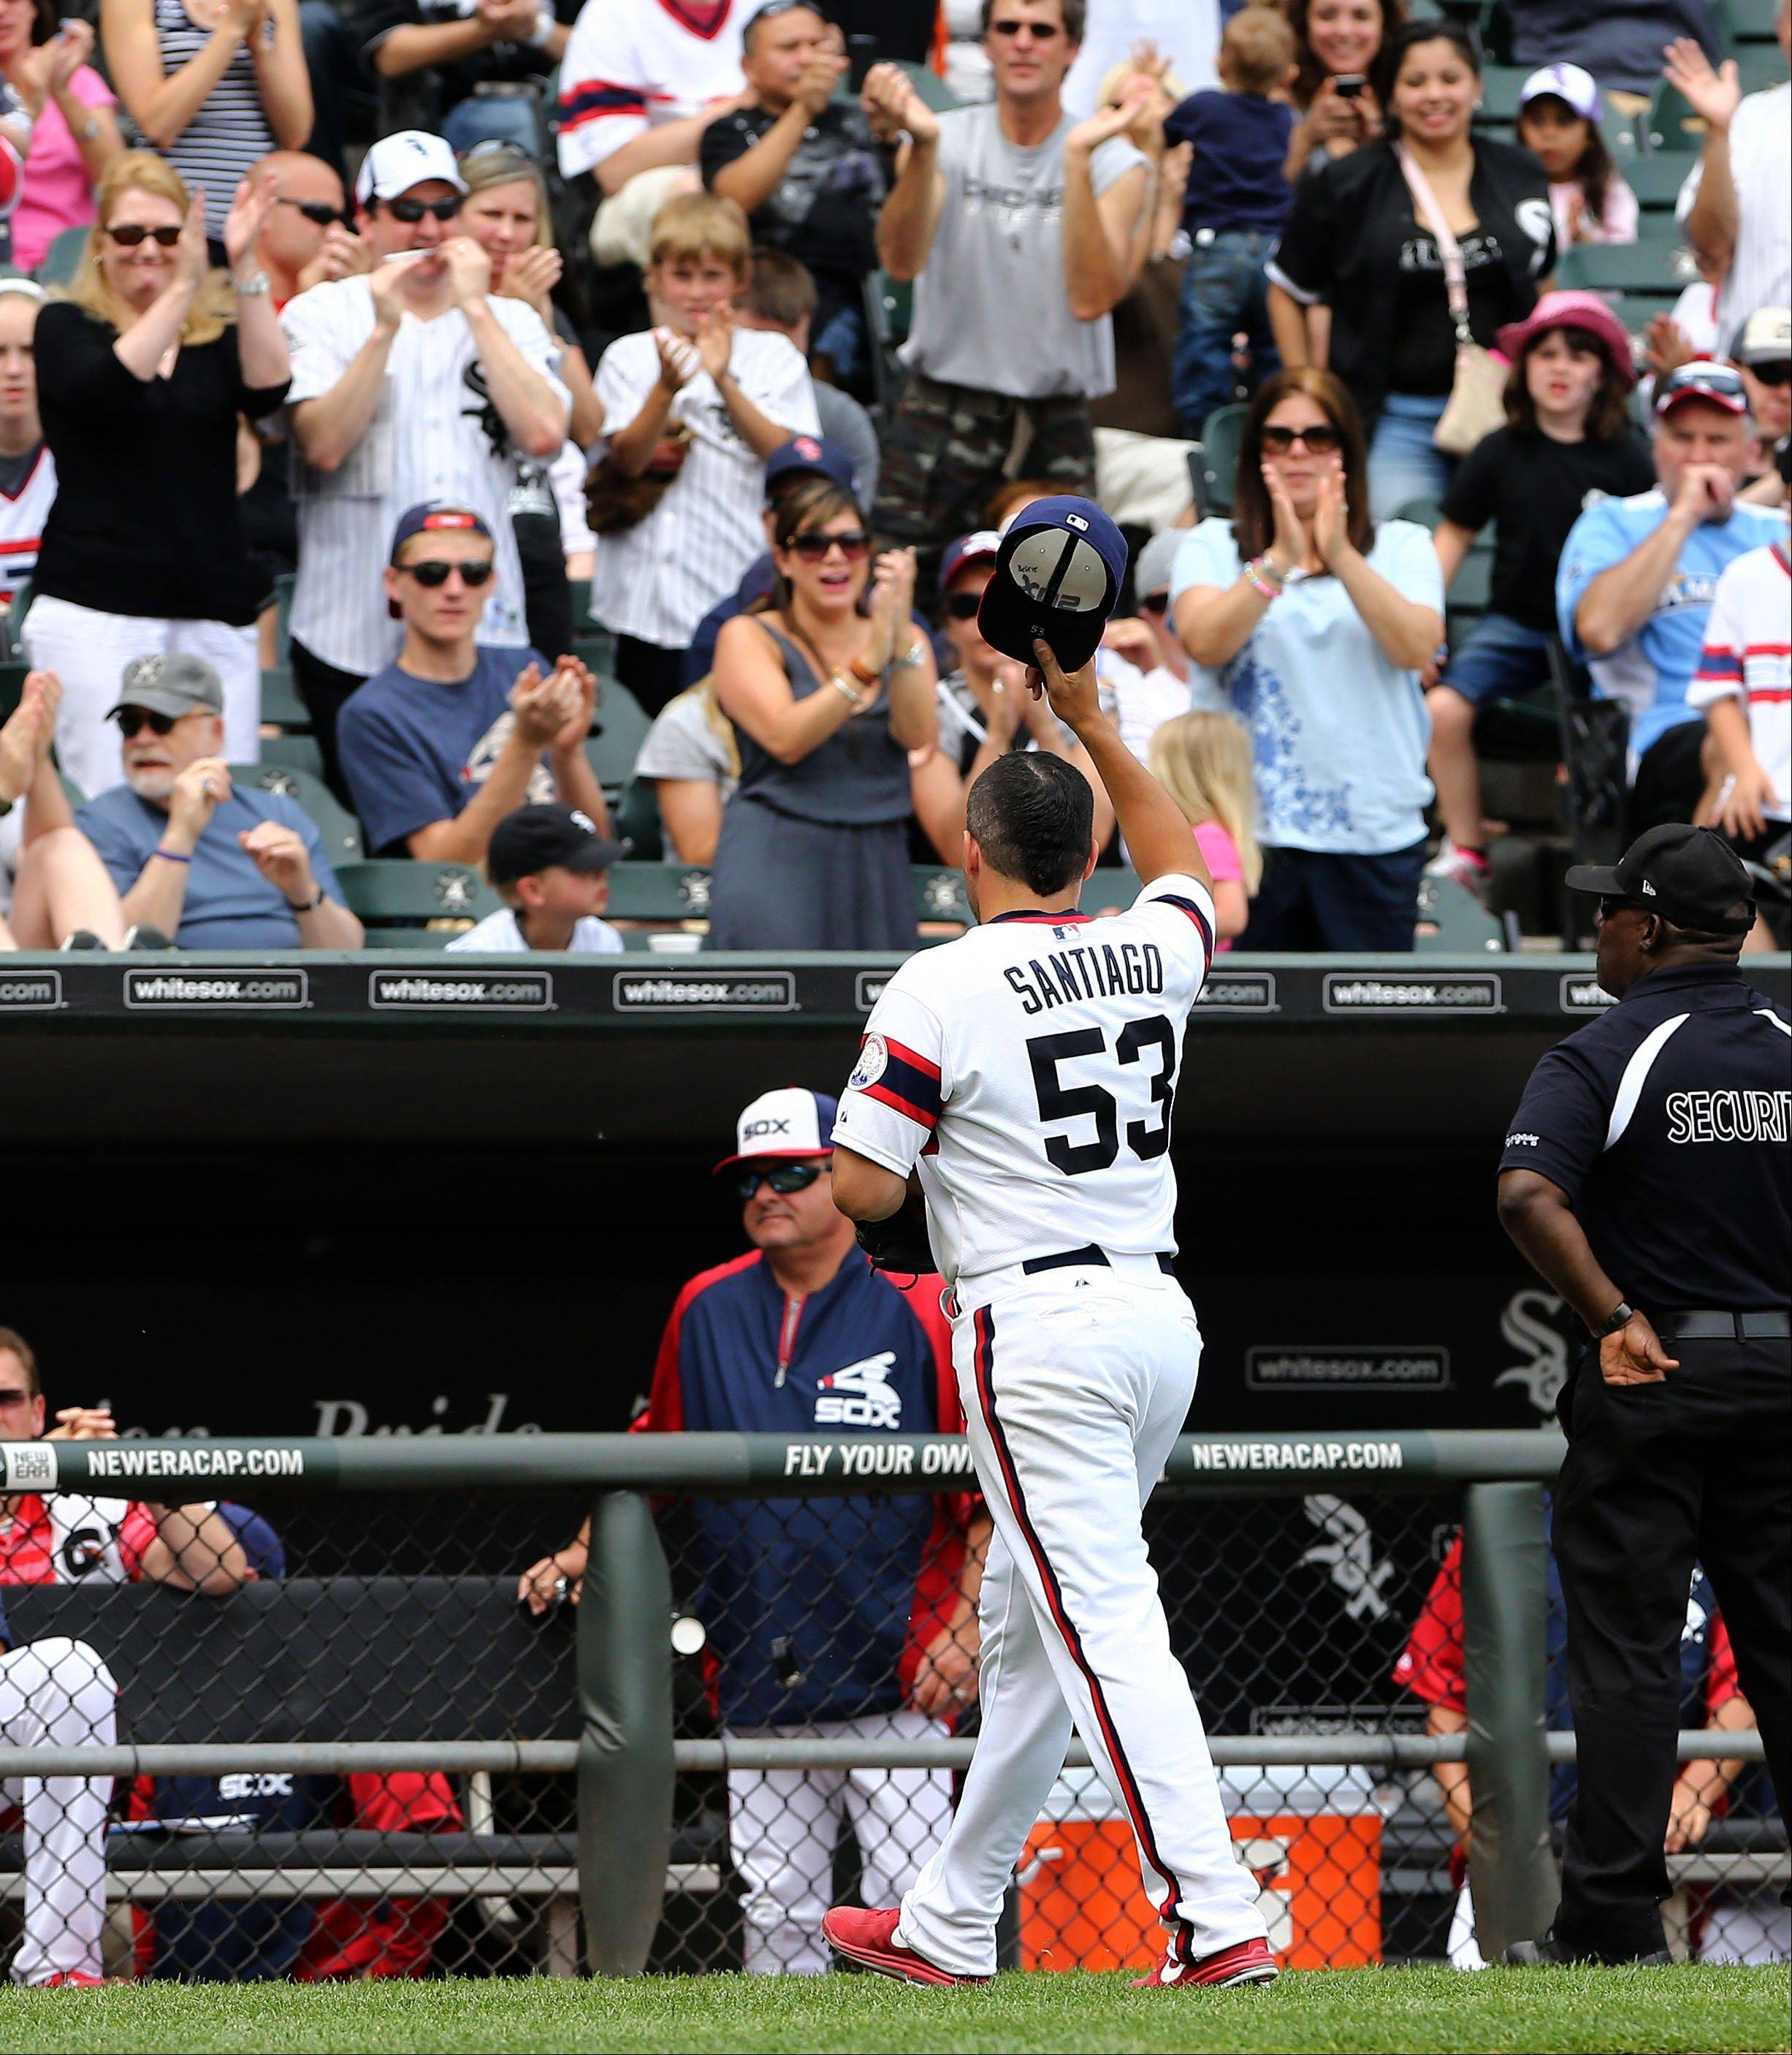 Starter Hector Santiago tips his hat to the fans after leaving the game in the seventh inning Sunday against the Athletics at U.S. Cellular Field. The 25-year-old lefty is 4-2 after earning the win, allowing 2 runs (1 earned) on 4 hits in 61⁄3 innings.